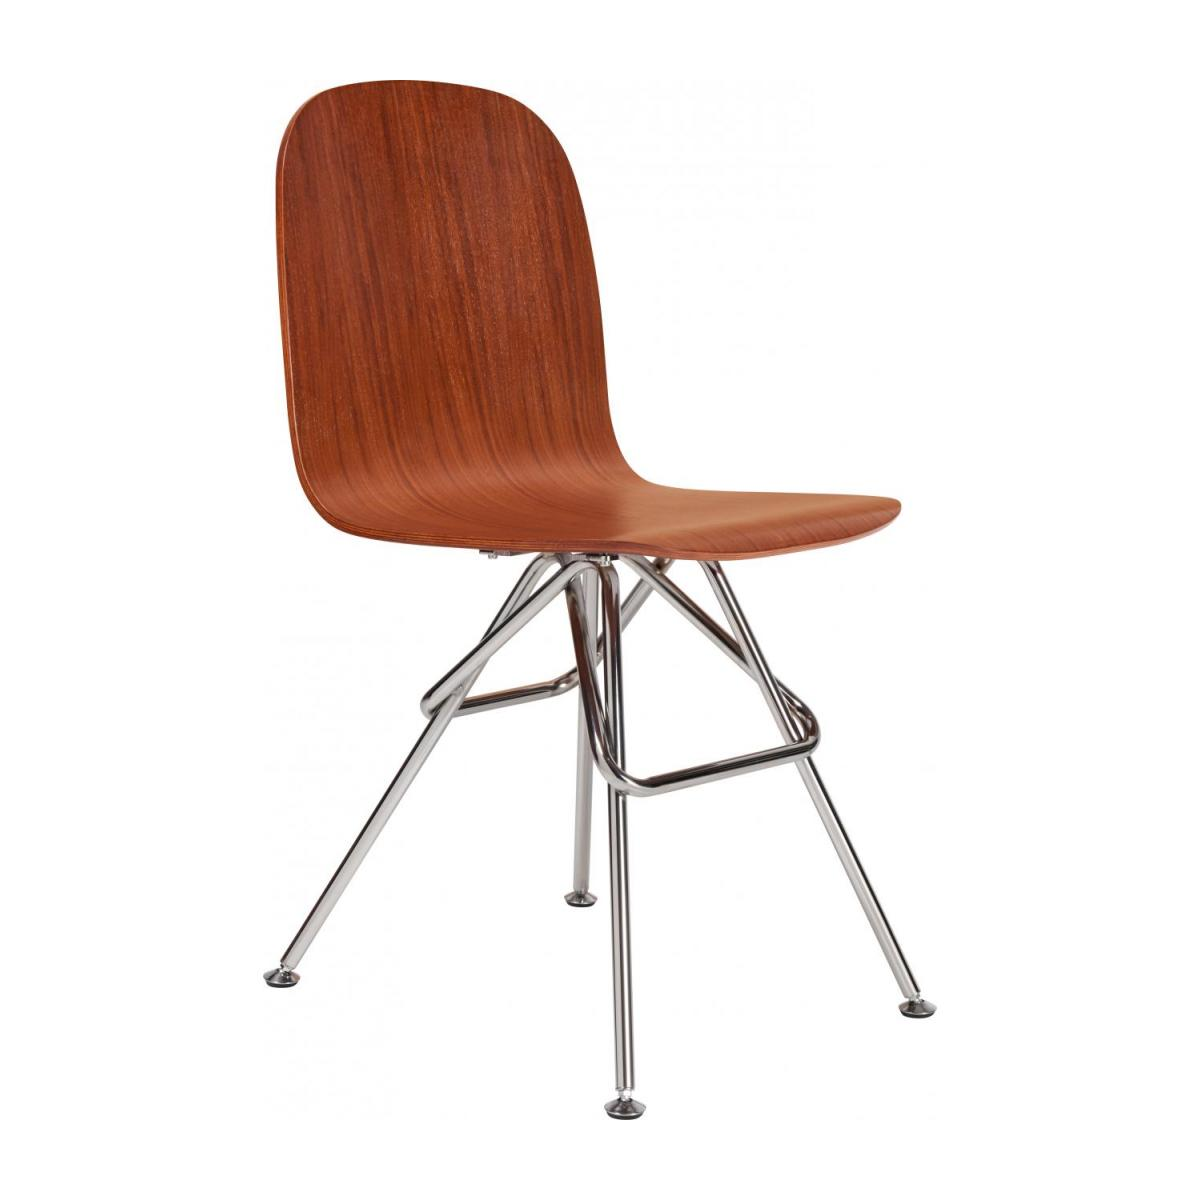 Walnut chair and chrome steel legs n°1